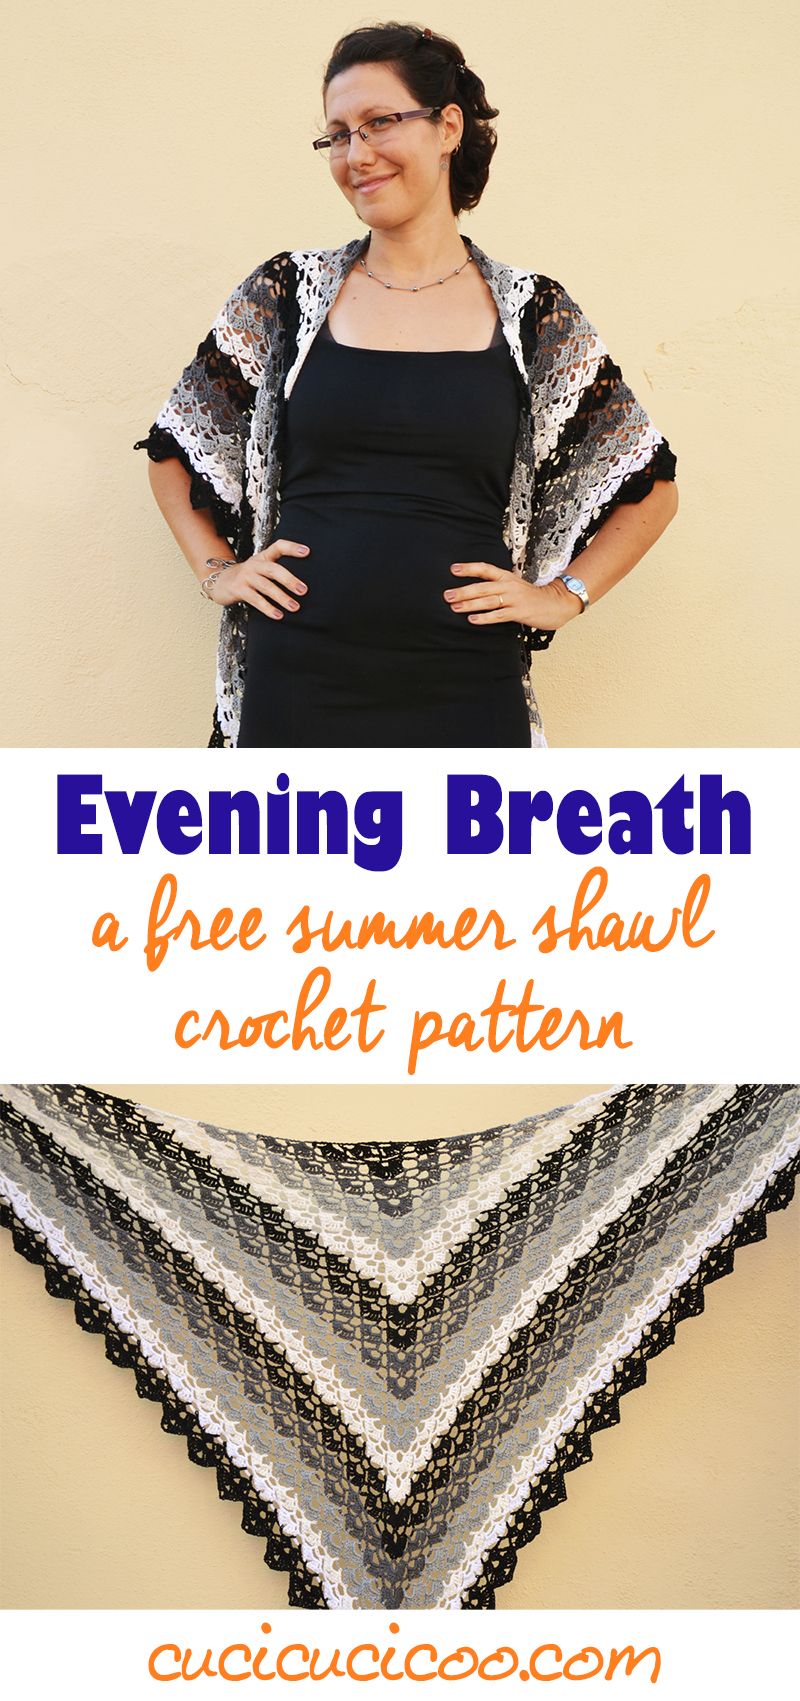 Need a wrap to cover your shoulders with on summer evenings? Try Evening Breath, this summer shawl crochet pattern by DROPS. It can also be used as a scarf in cooler weather. This grey-scale version was created by www.cucicucicoo.com